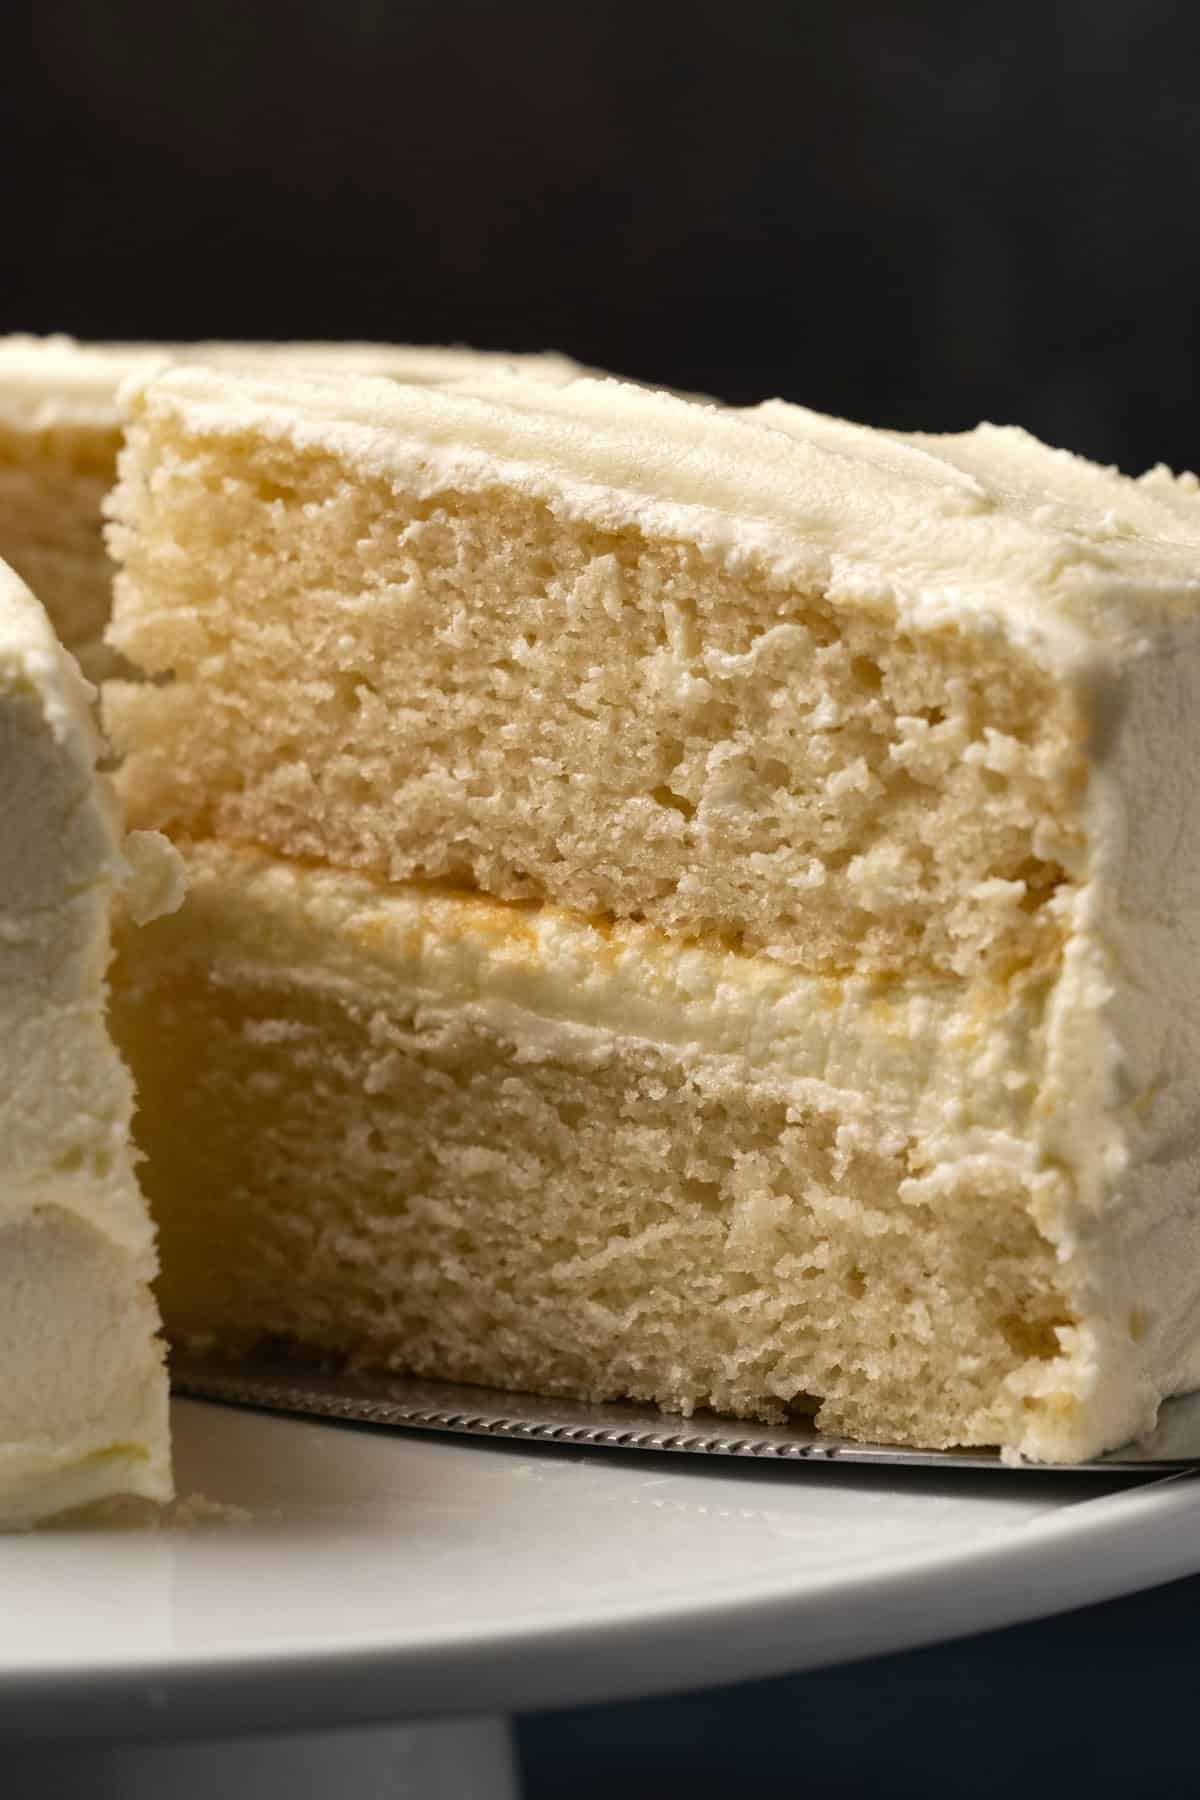 White cake with one slice cut on a white cake stand.